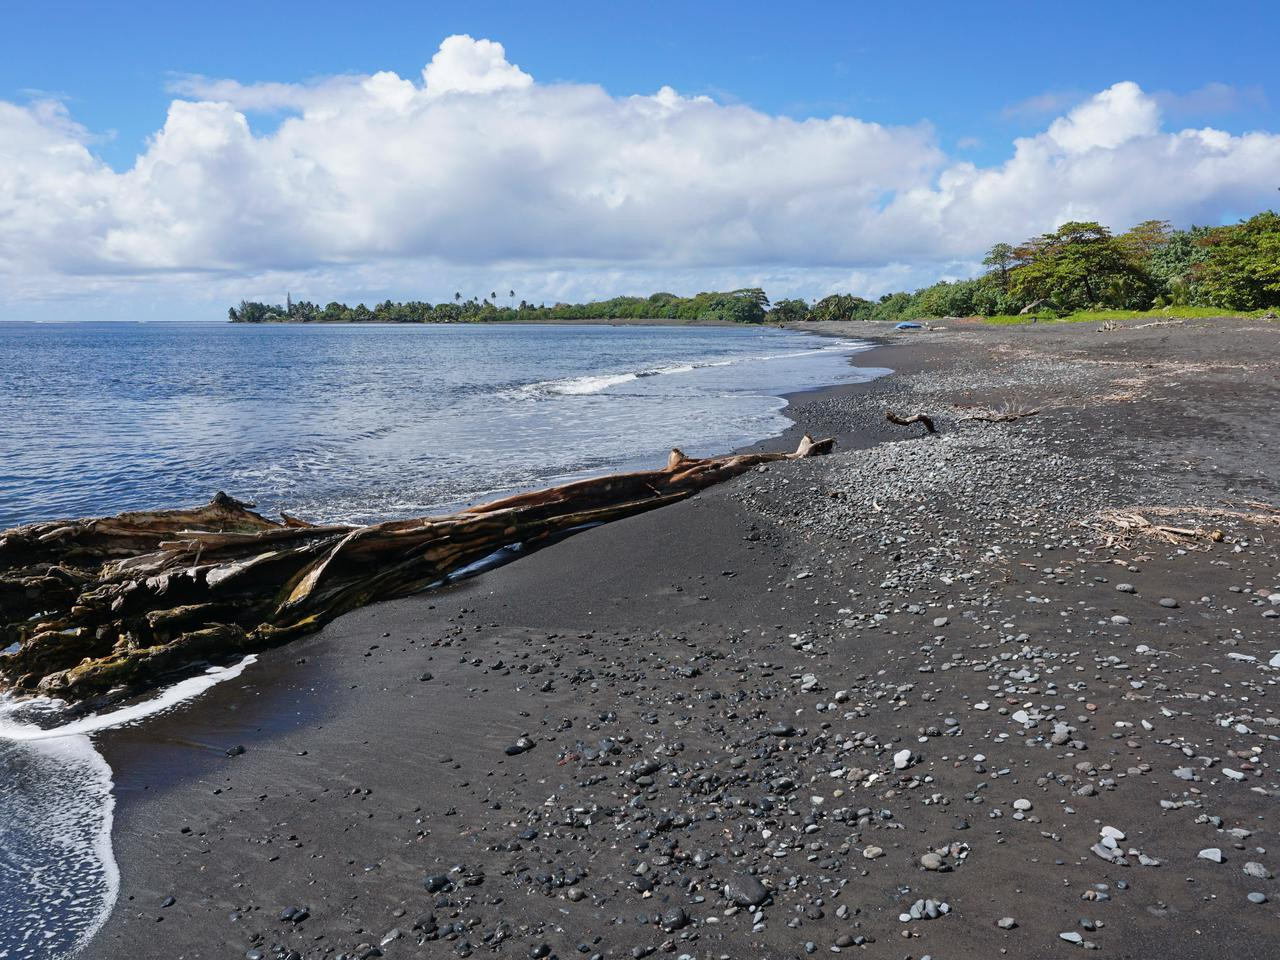 Black sand beach with a driftwood trunk near Tautira village, Tahiti Iti island, French Polynesia, south Pacific ocean